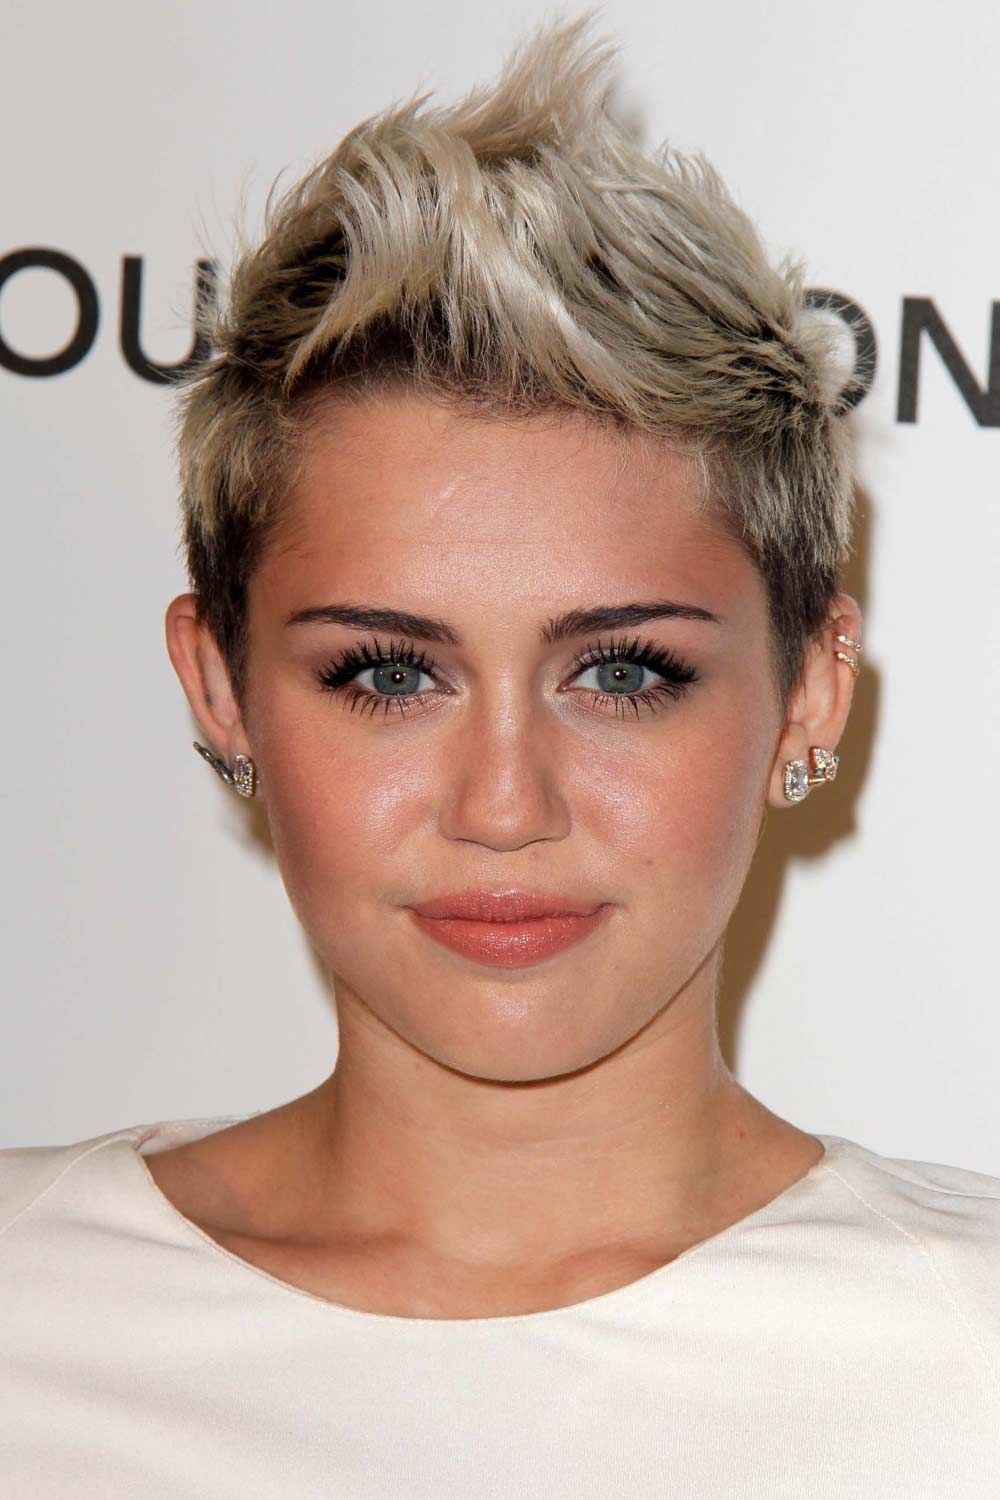 The Androgynous Hairstyles: Miley Cyrus